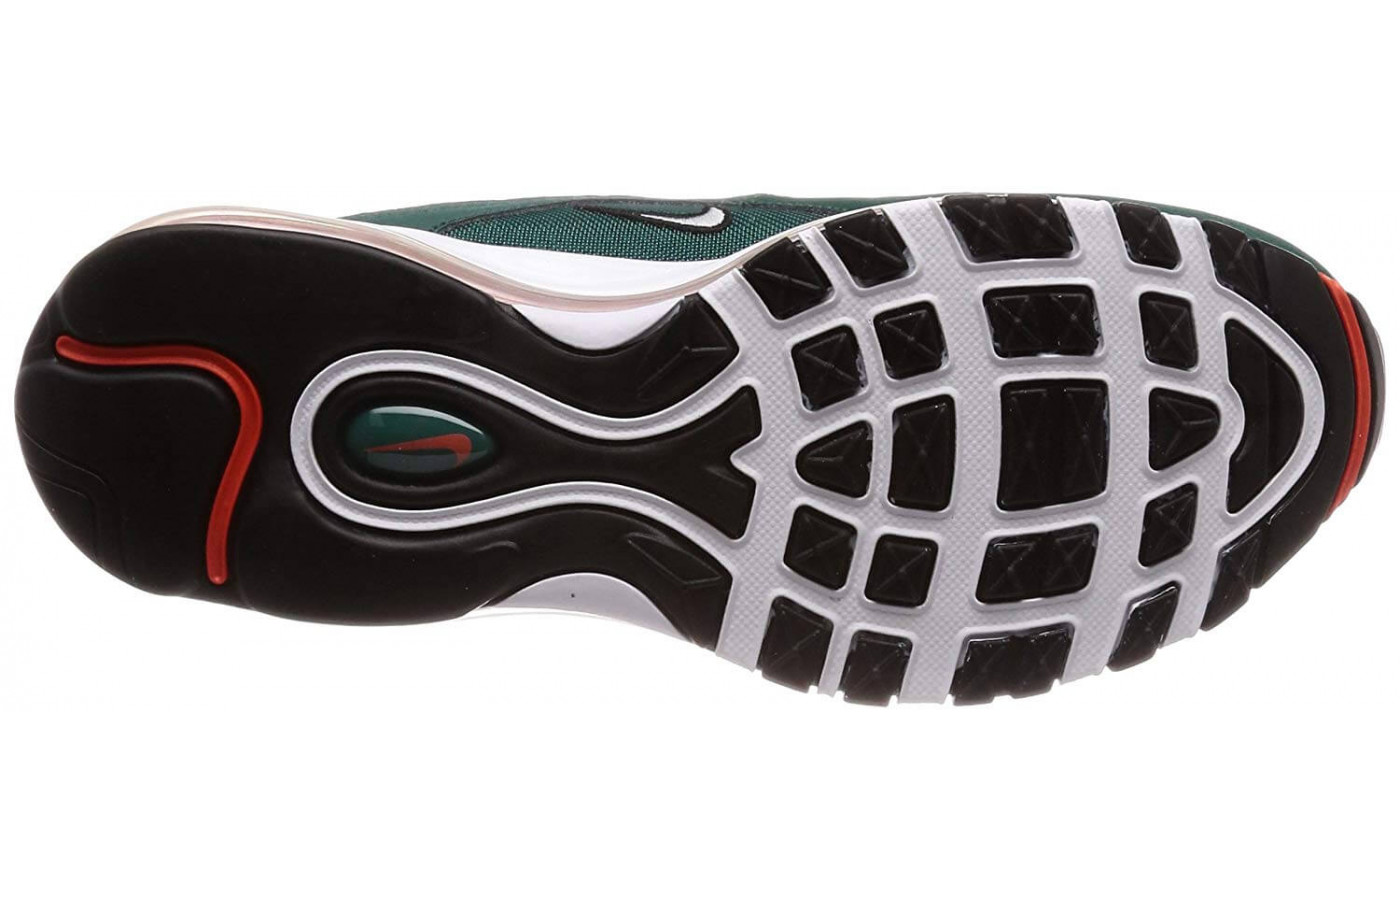 The Air Max 97's outsole is made from a basic rubber compound